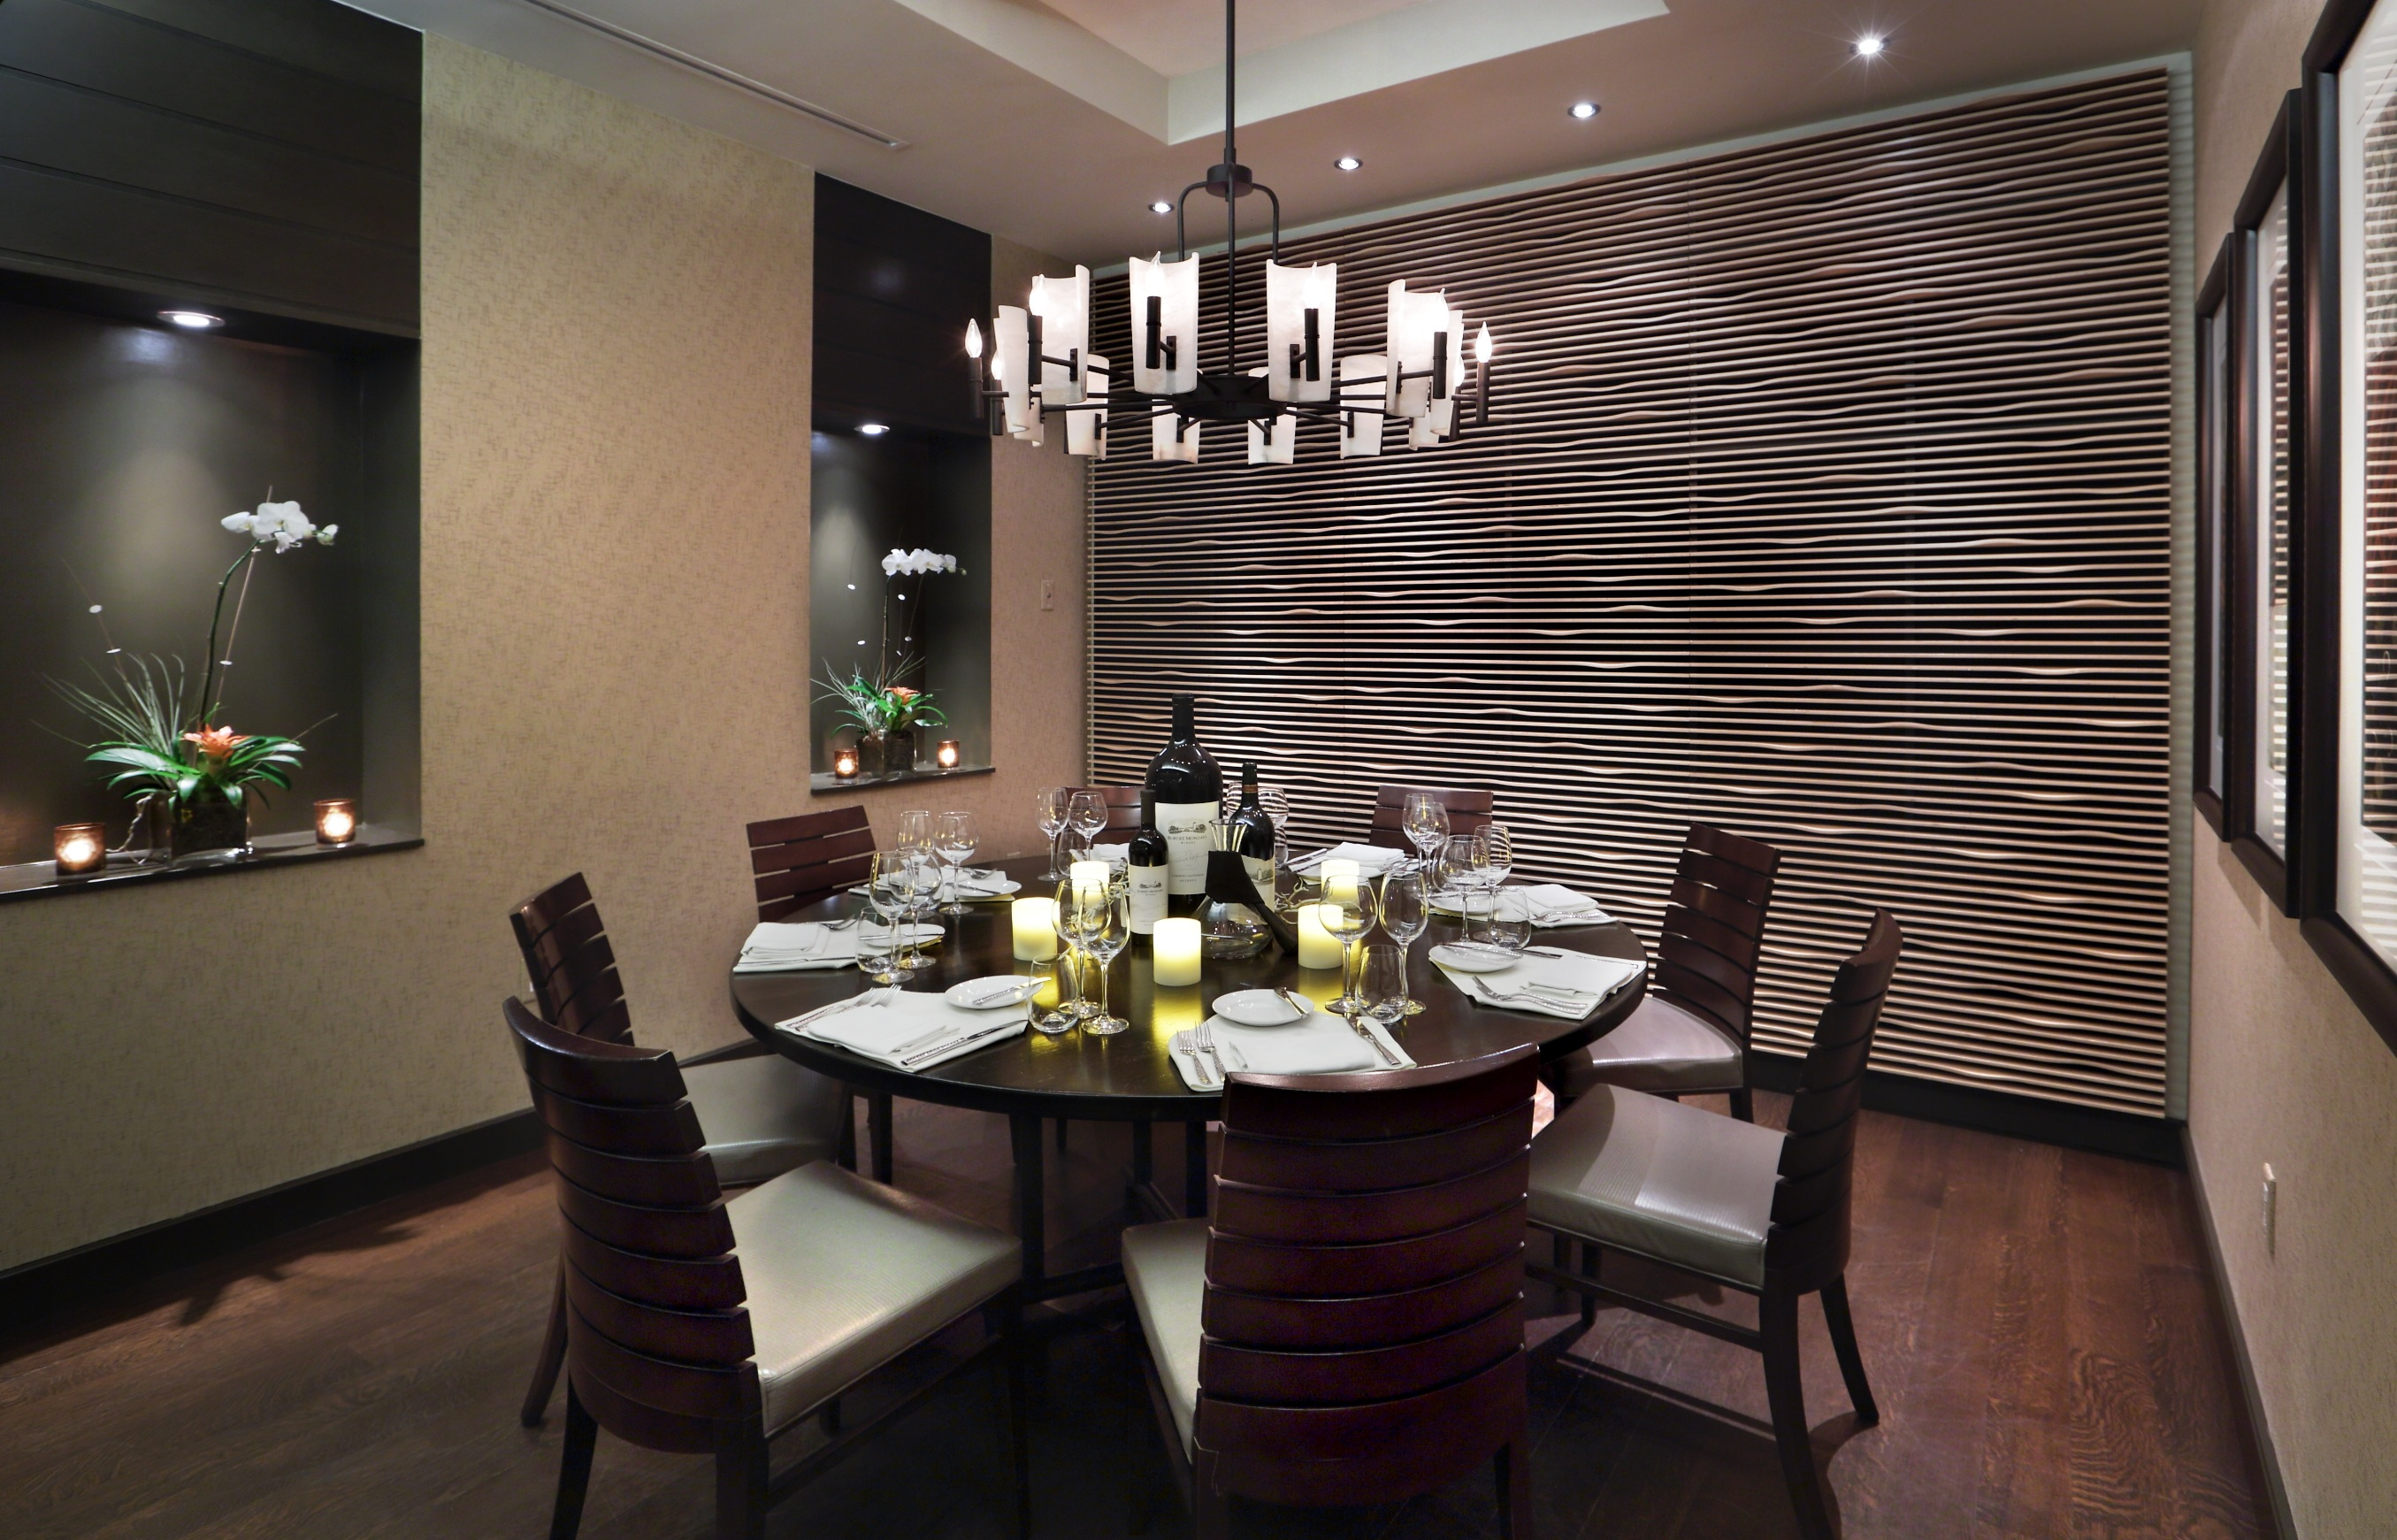 Modern Lighting For Dining Room Painting Fair Selecting The Perfect Lighting For Your Dining Room  Homesfeed Inspiration